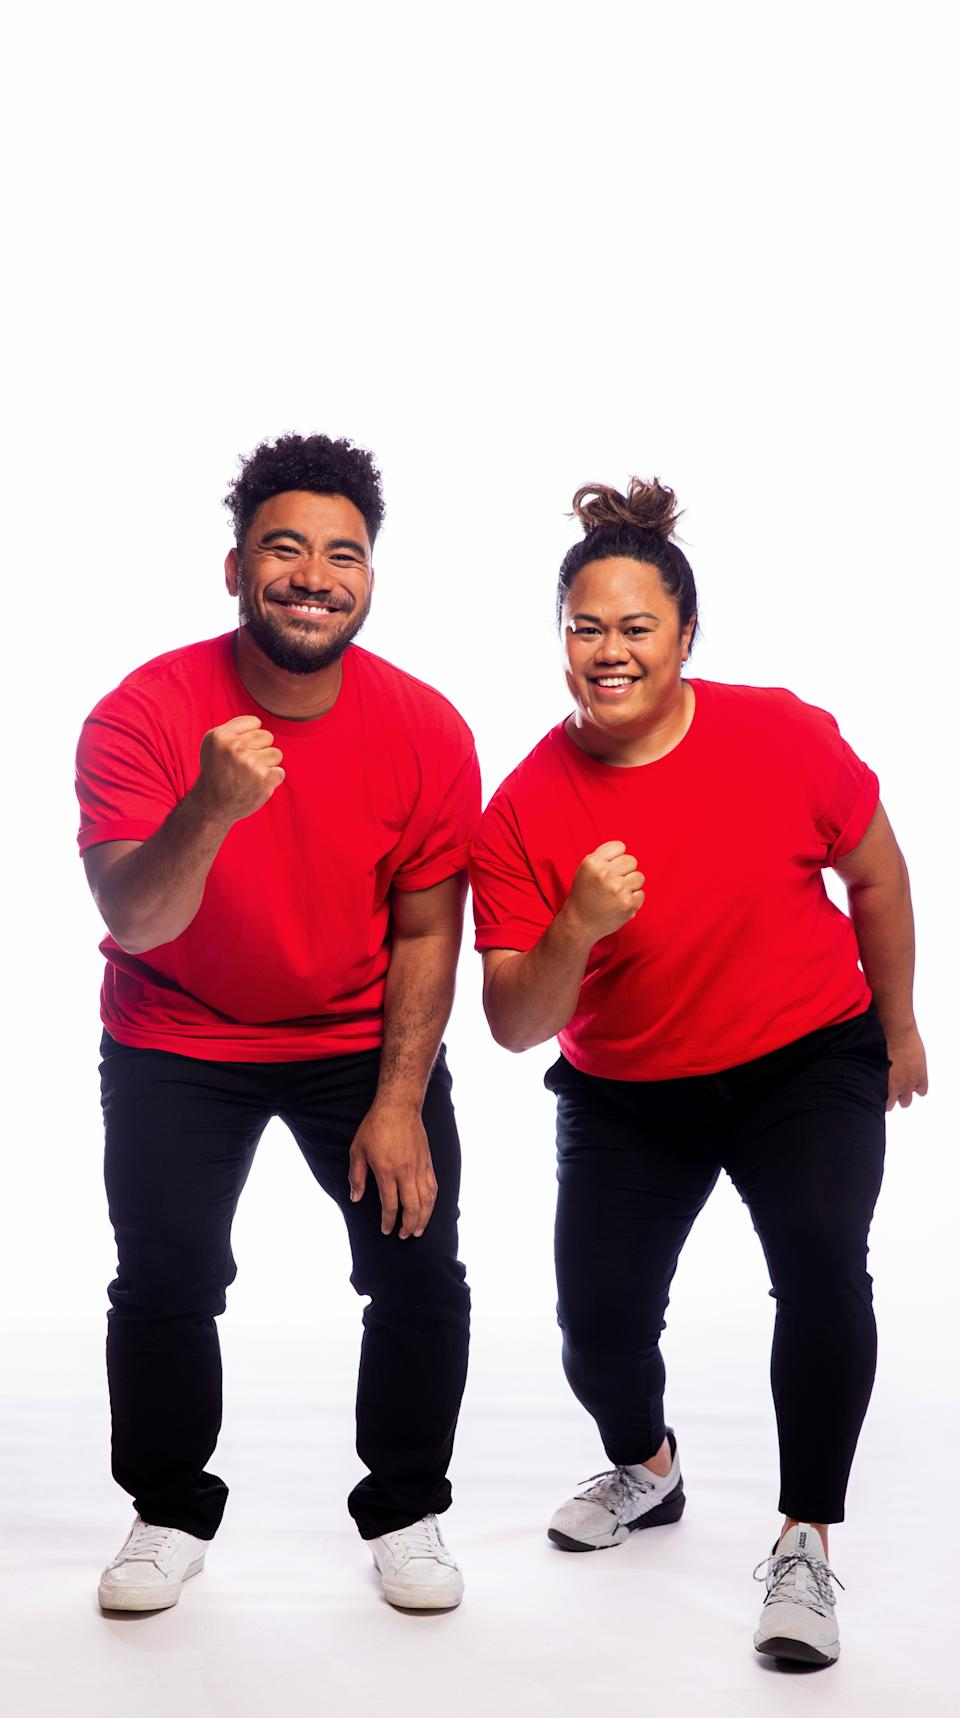 The Amazing Race Australia 2021 contestants Sefa and Jessica, NSW. Photo: Channel 10 (supplied).